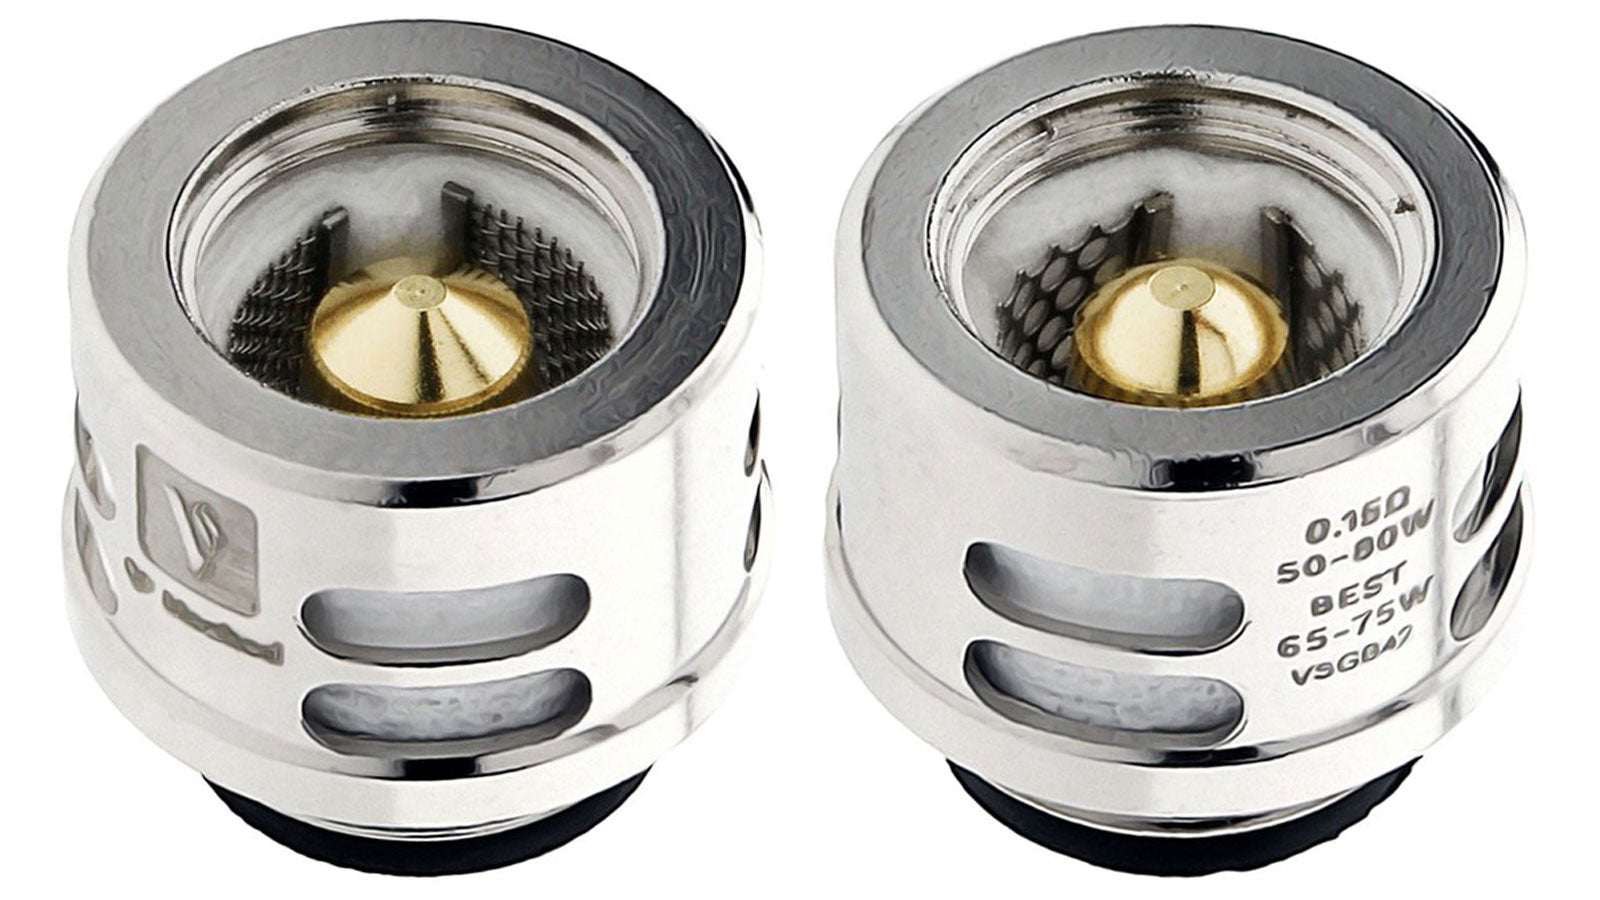 The Vaporesso QF Replacement Coils are made for the Skrr Sub-Ohm Tank. These replacement coils are available in GT CCELL, QF Meshed and QF Strip. Each QF coil head is wicked with a blend of flax fibre and cotton, made for increased lifespan